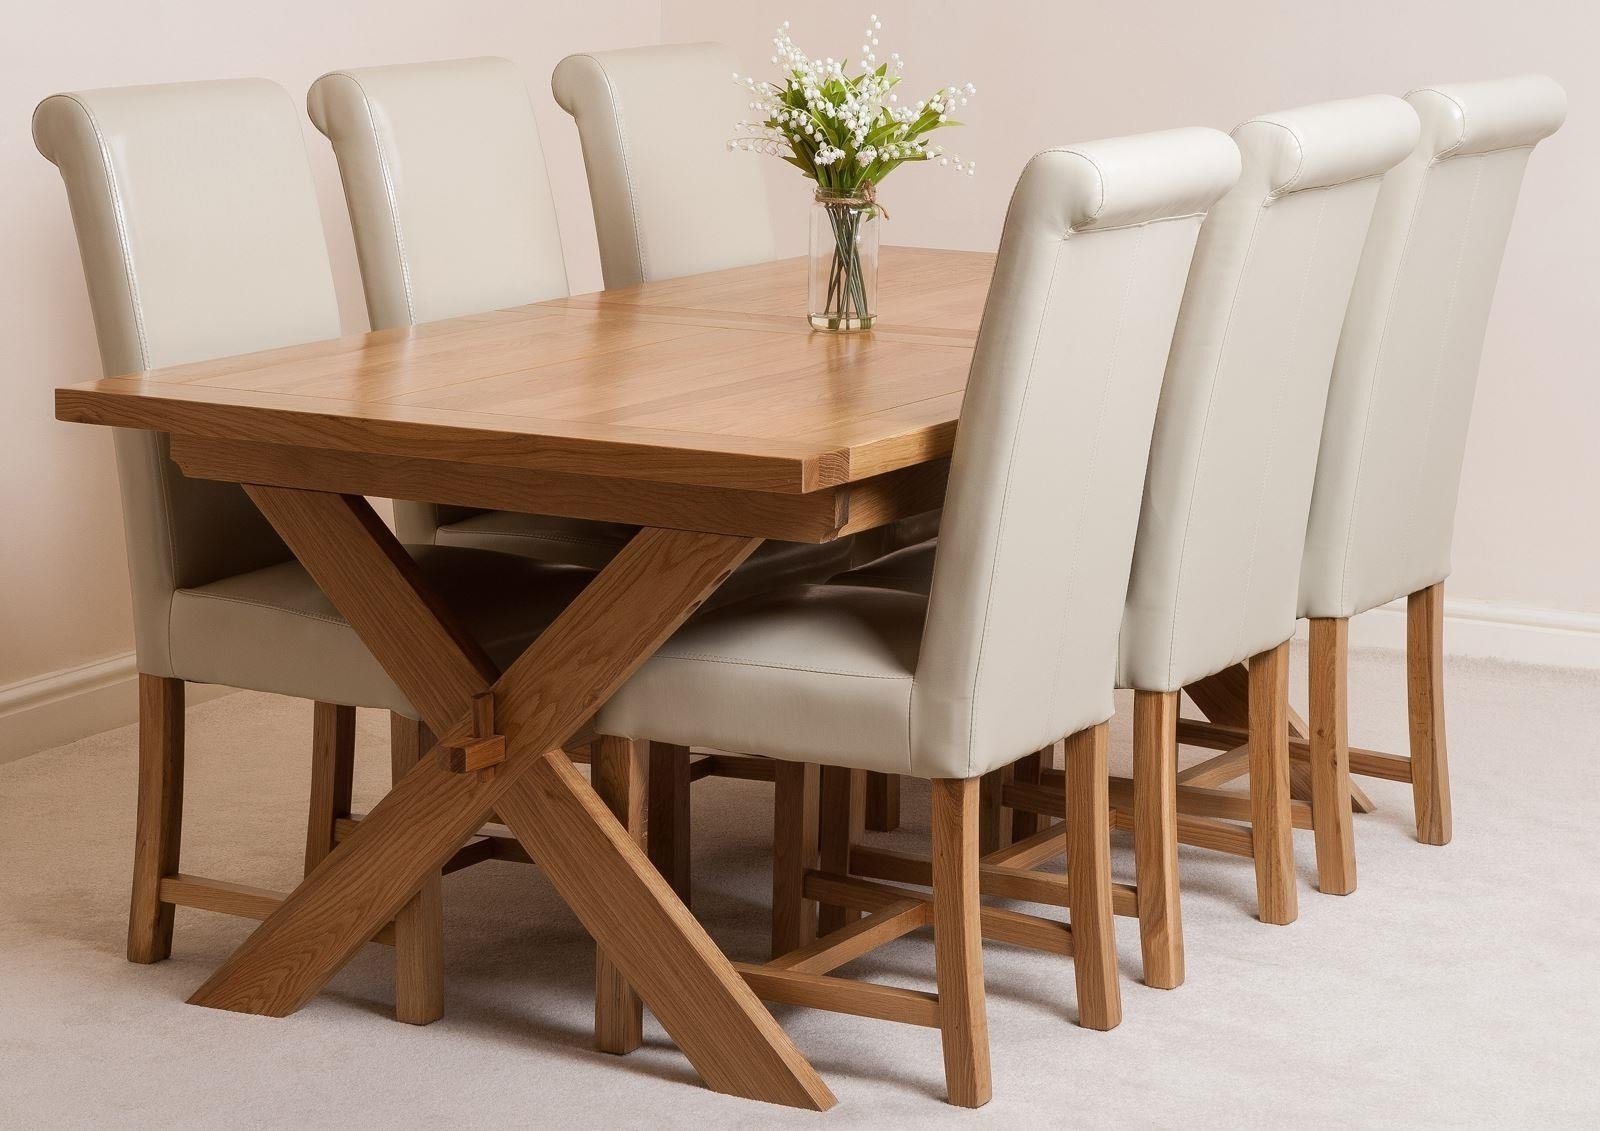 Oak Furniture King Within 2018 Extending Dining Table Sets (View 24 of 25)